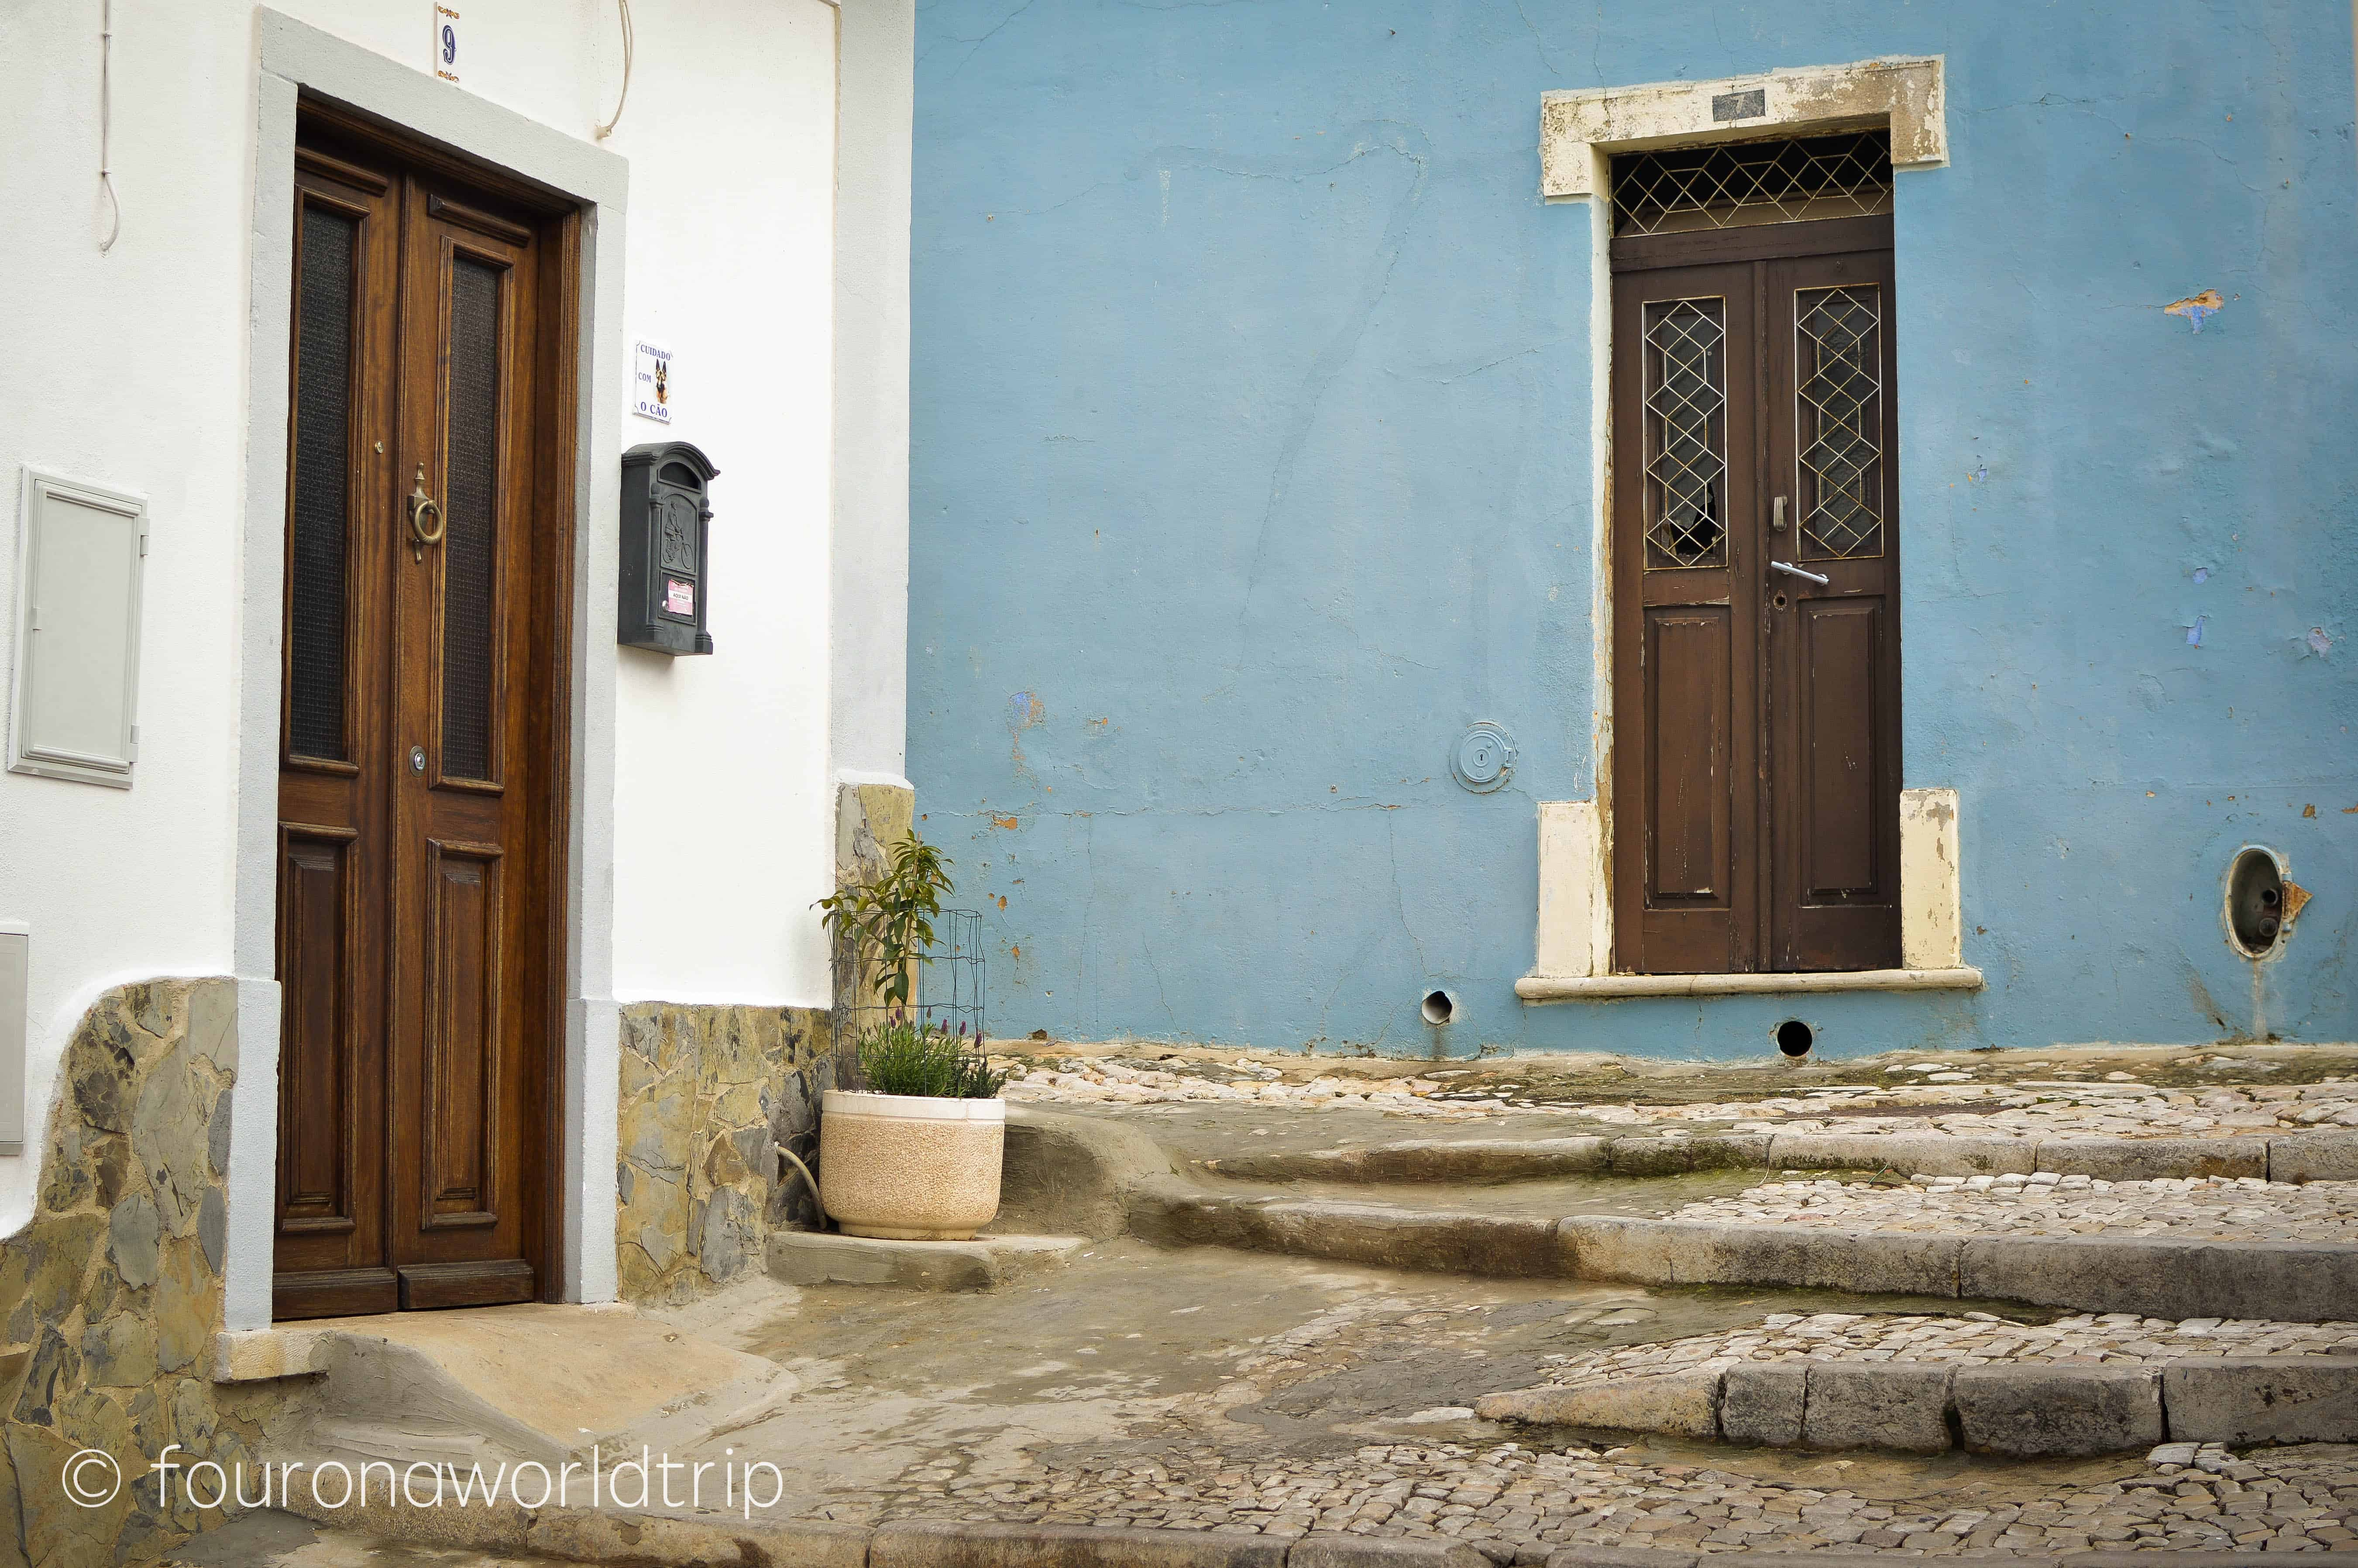 cobbled stoned streets, colourful houses and cute doors – The old town of Loulé